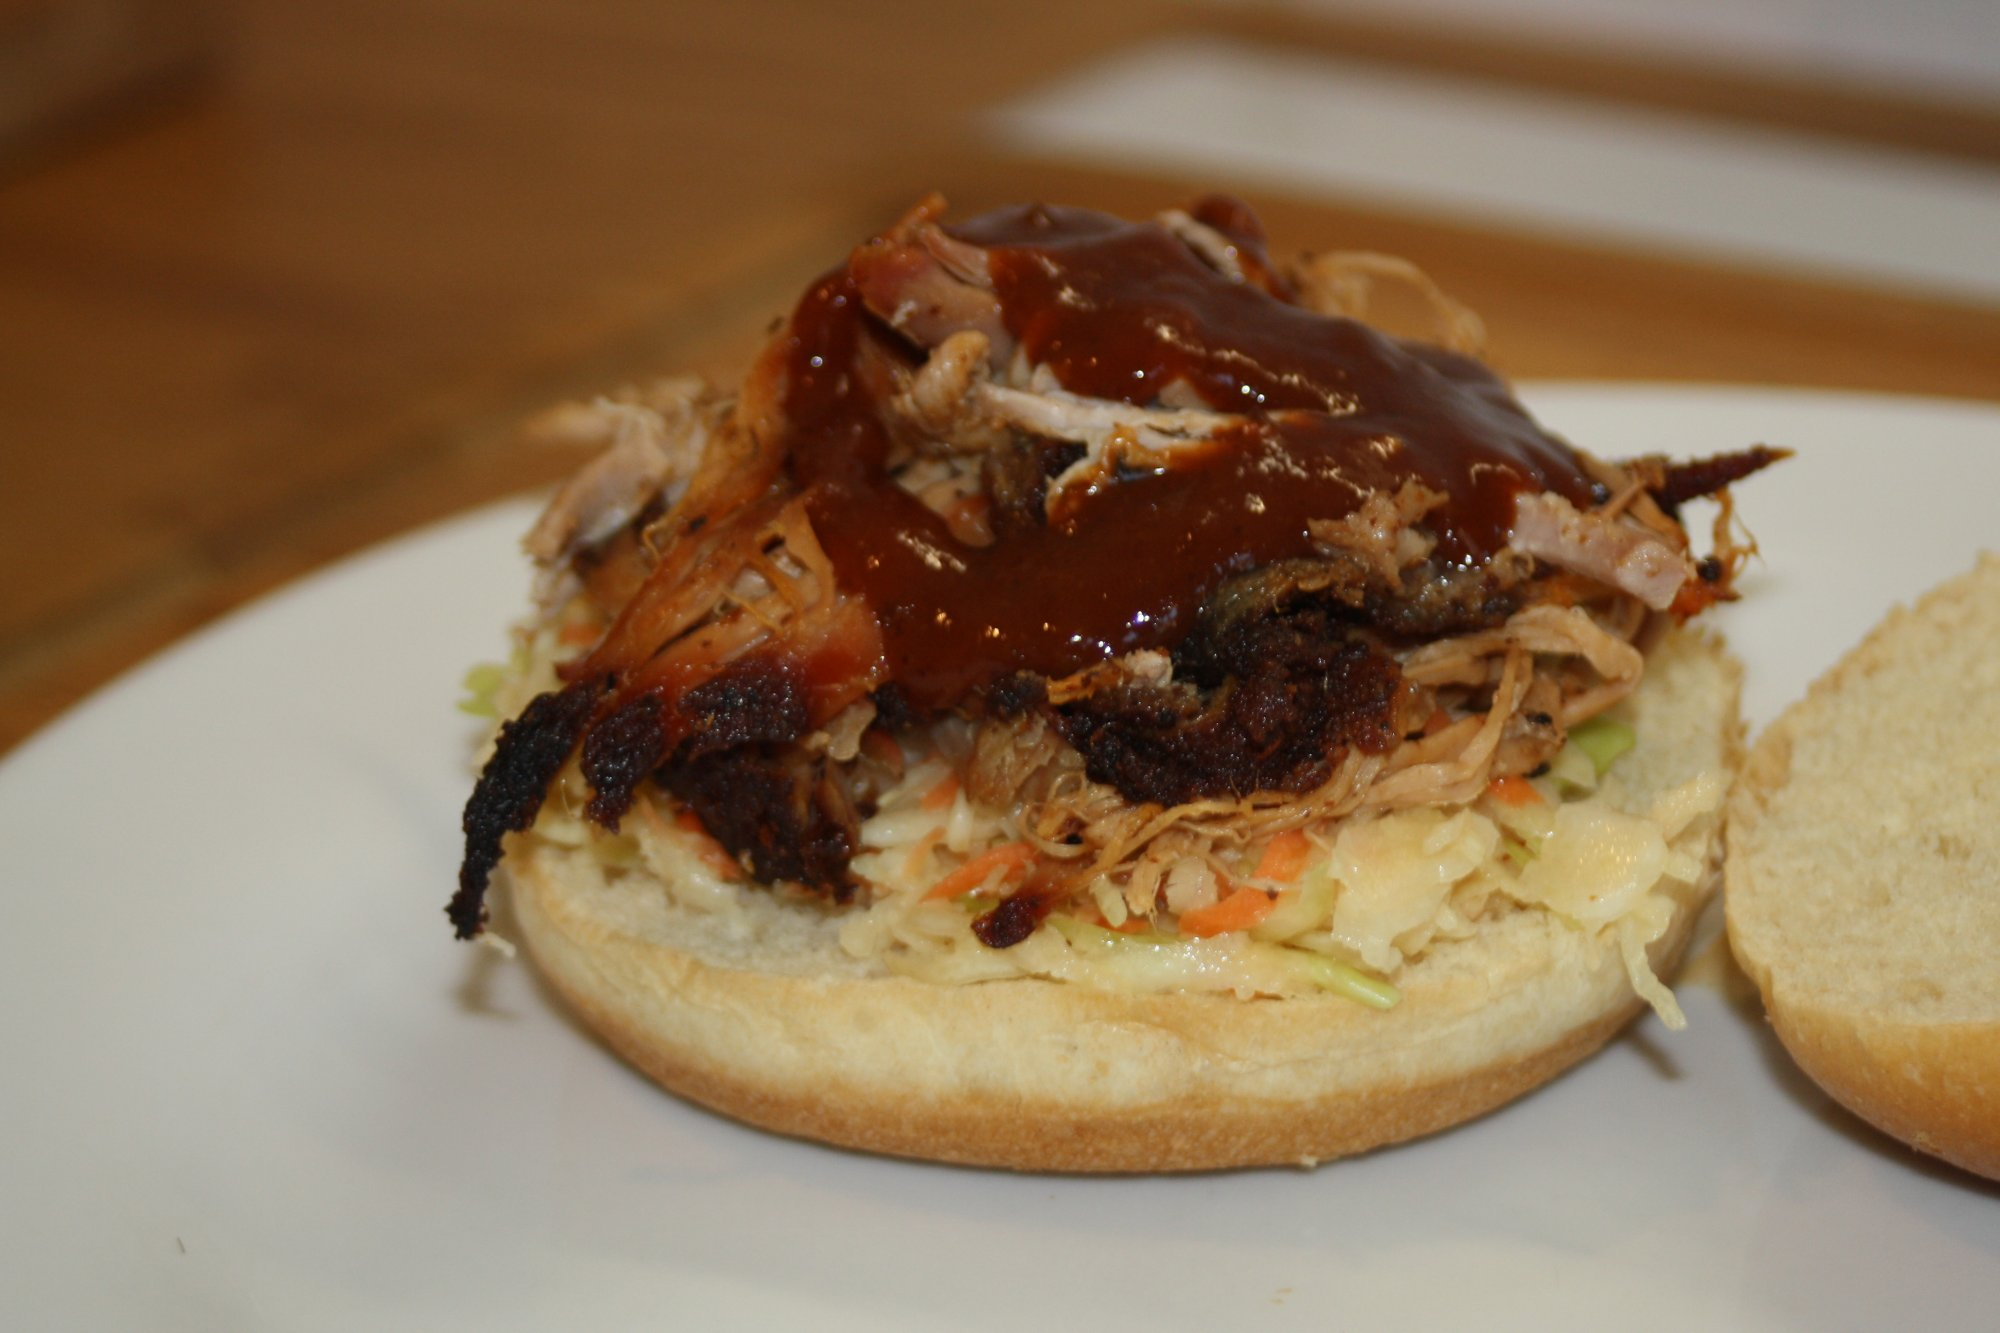 Gsv Pulled Pork Gasgrill : Pulled pork vom gasgrill die anleitung test sizzlebrothers